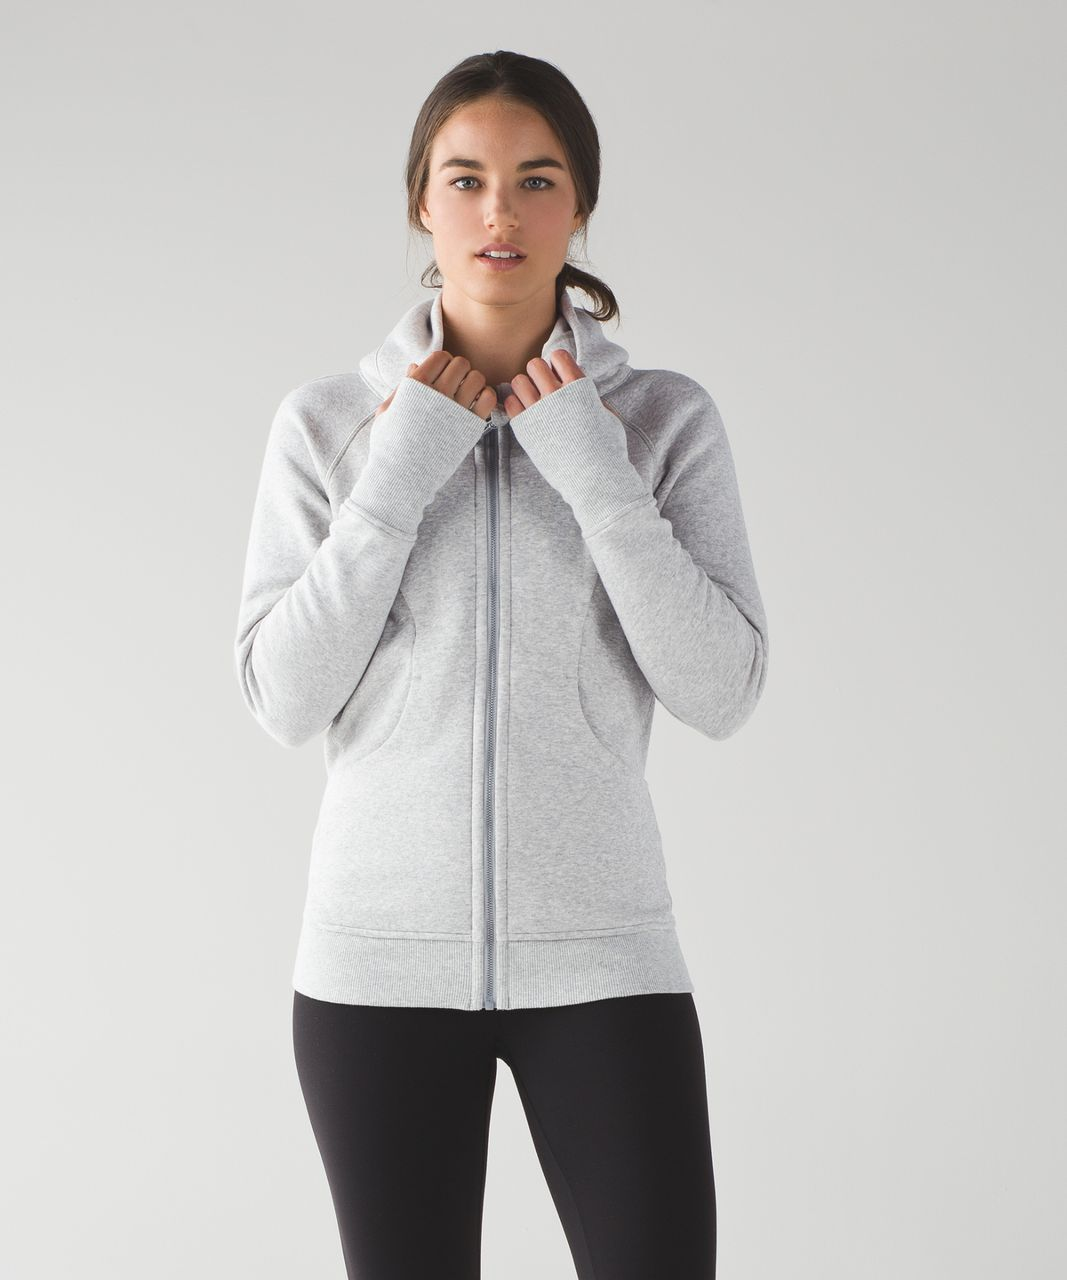 Lululemon Scuba Hoodie *Classic Cotton Fleece - Heathered Light Grey